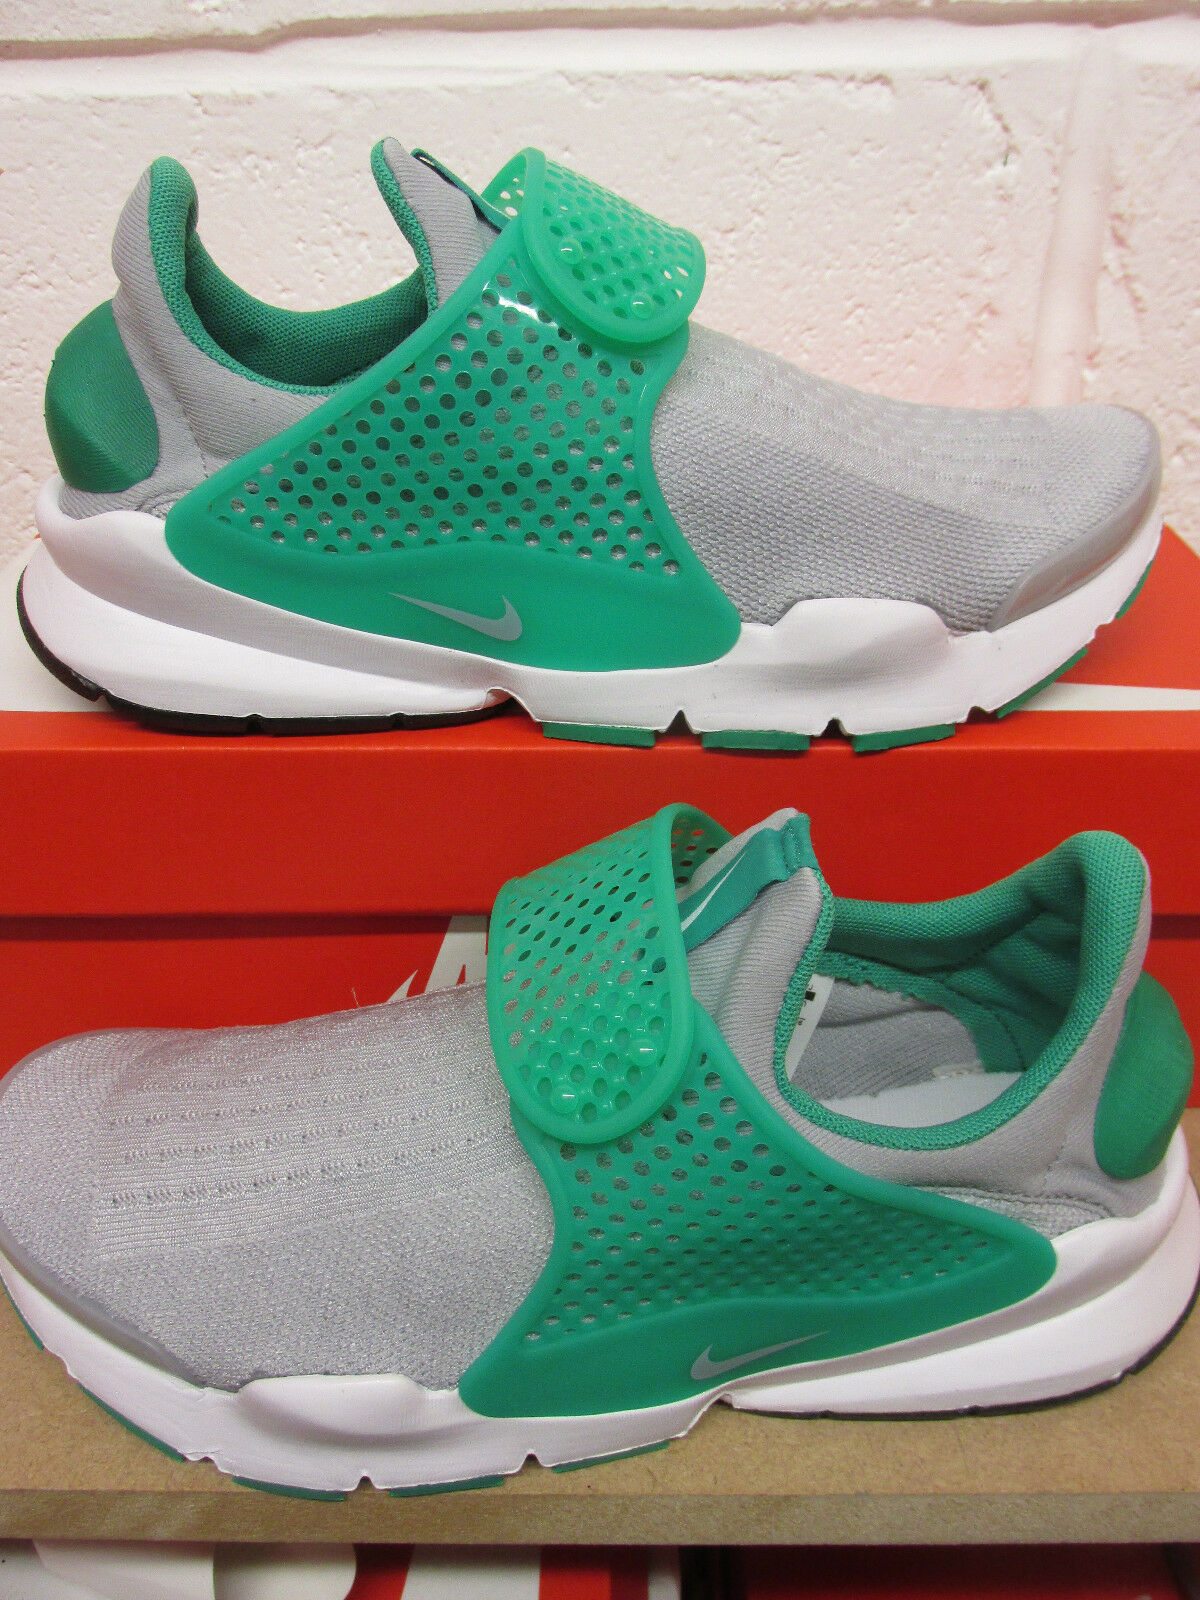 Nike Sock Dart Mens Running Trainers 819686 004 Sneakers shoes